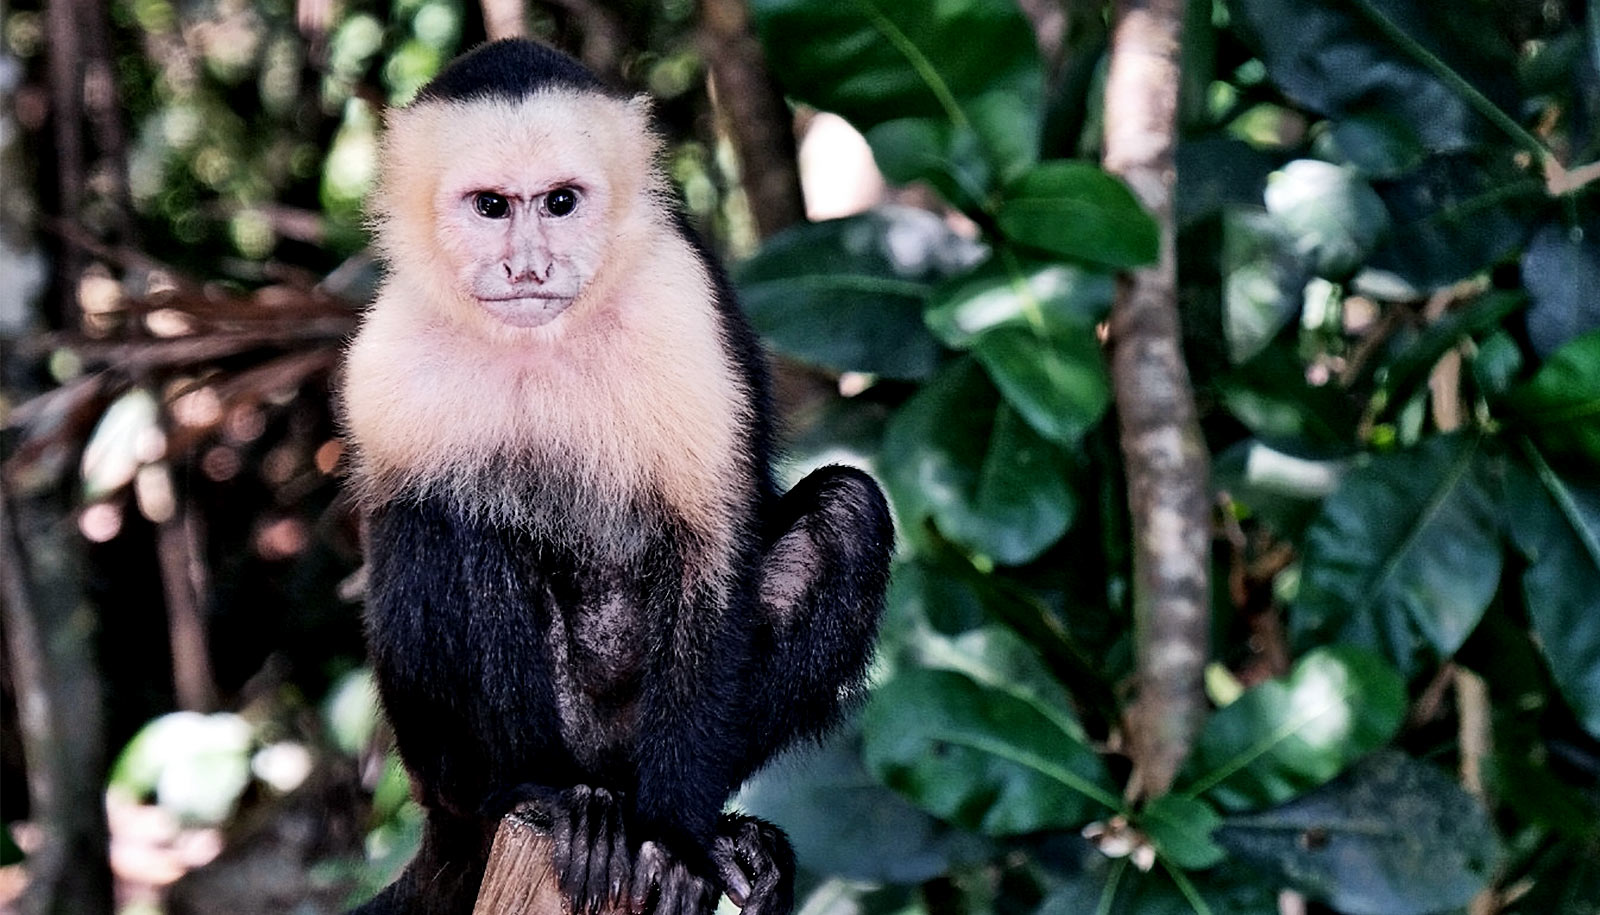 Monkeys are more willing than we are to 'take the shortcut'